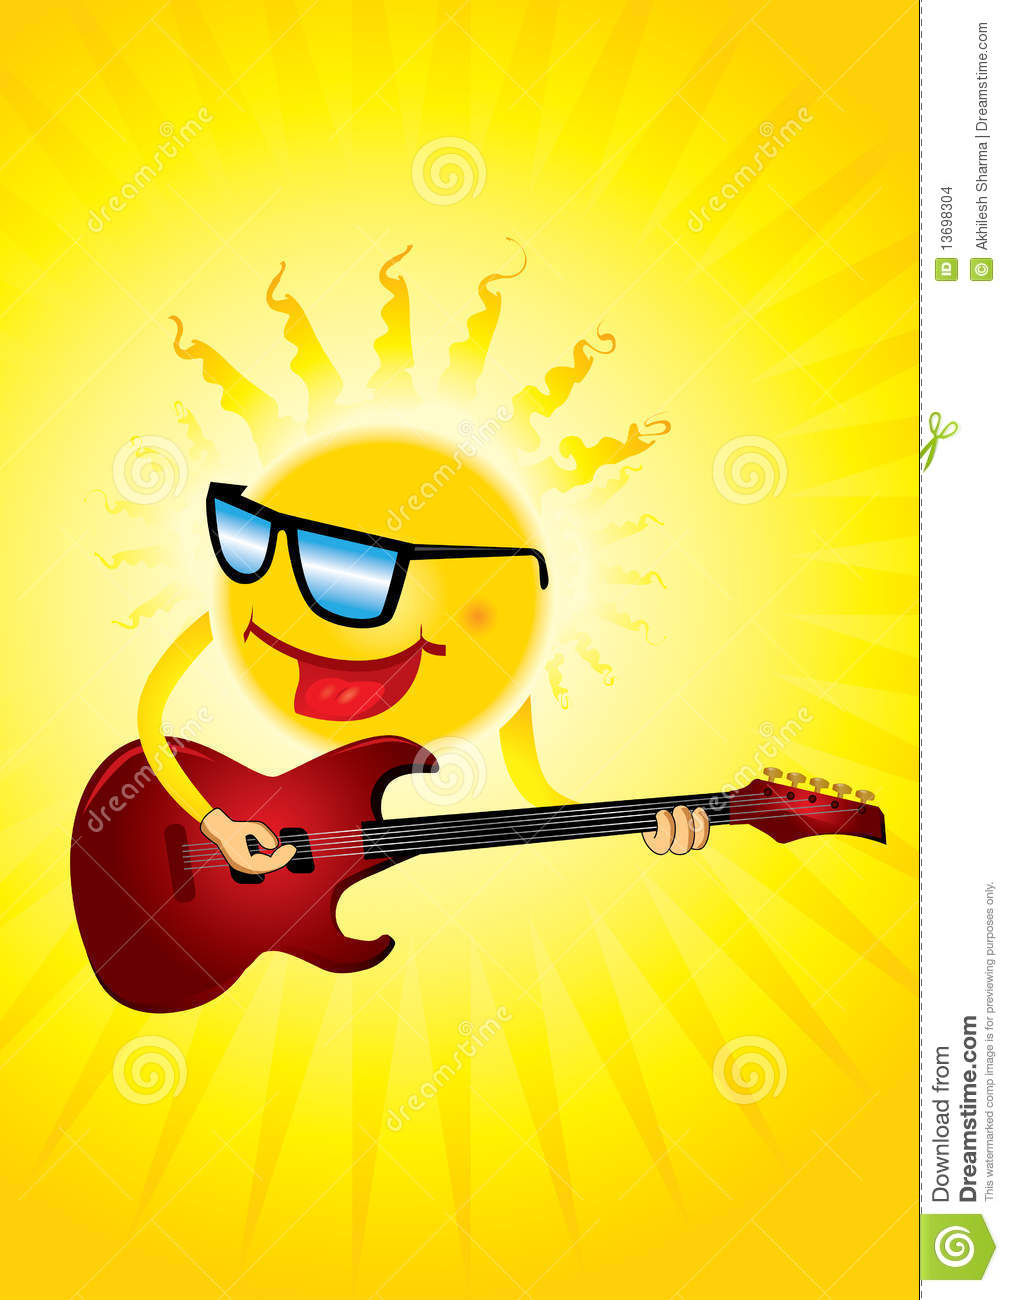 Hot sun with a guitar playing cool music.